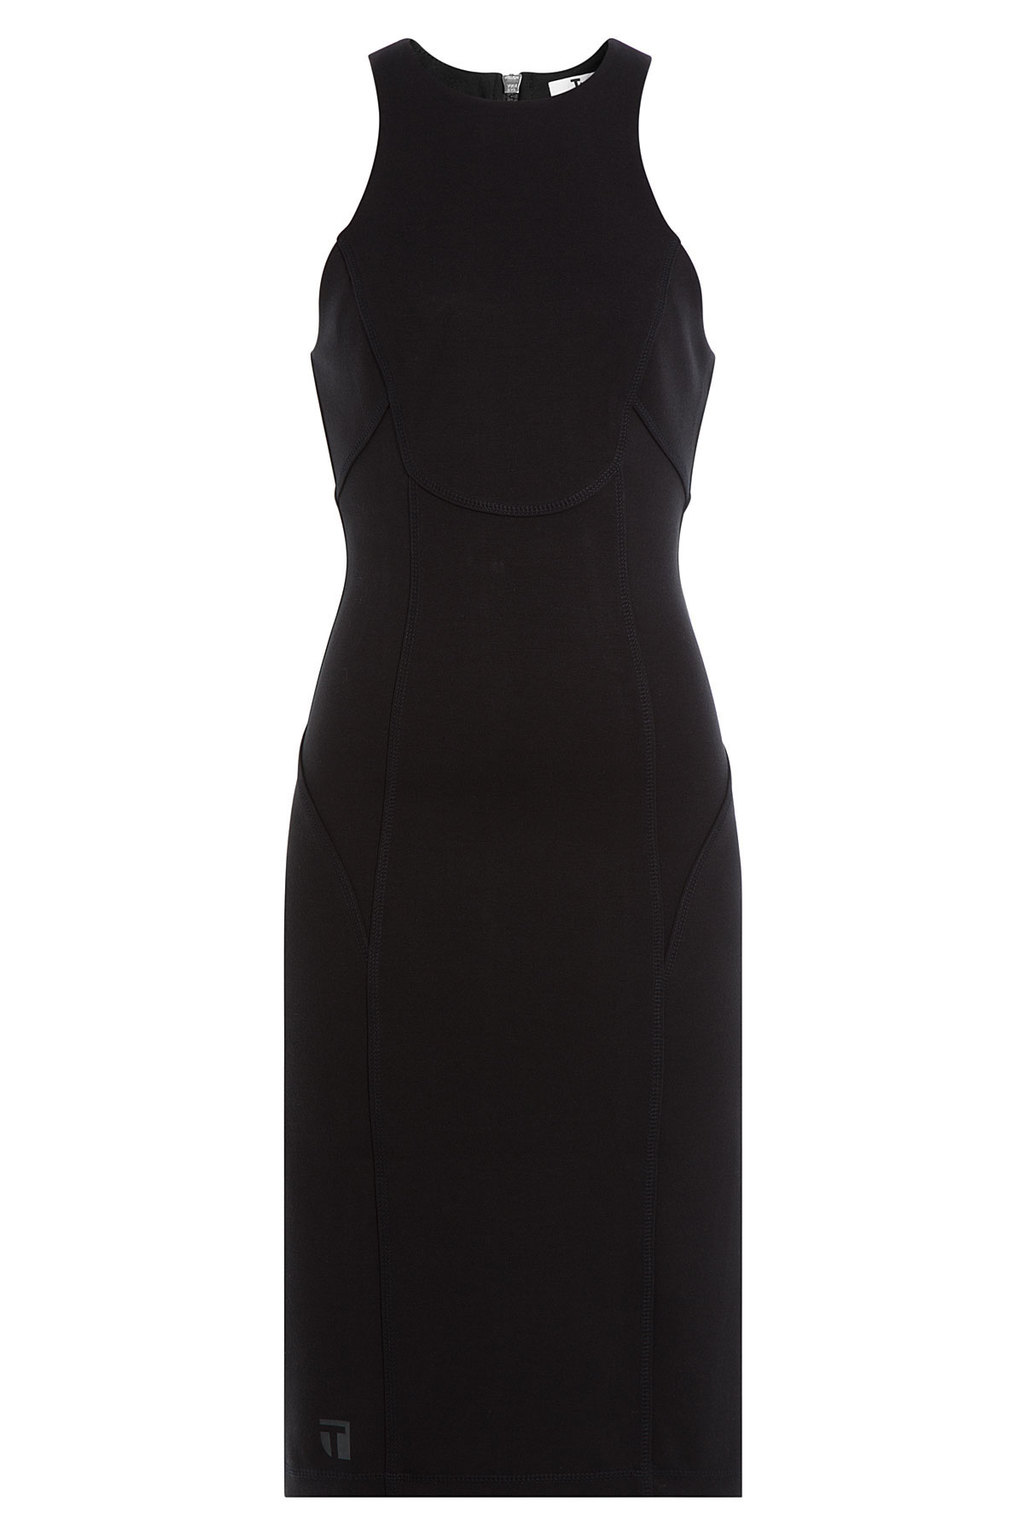 Jersey Dress Black - style: shift; length: below the knee; fit: tight; sleeve style: sleeveless; predominant colour: black; neckline: crew; sleeve length: sleeveless; season: a/w 2015